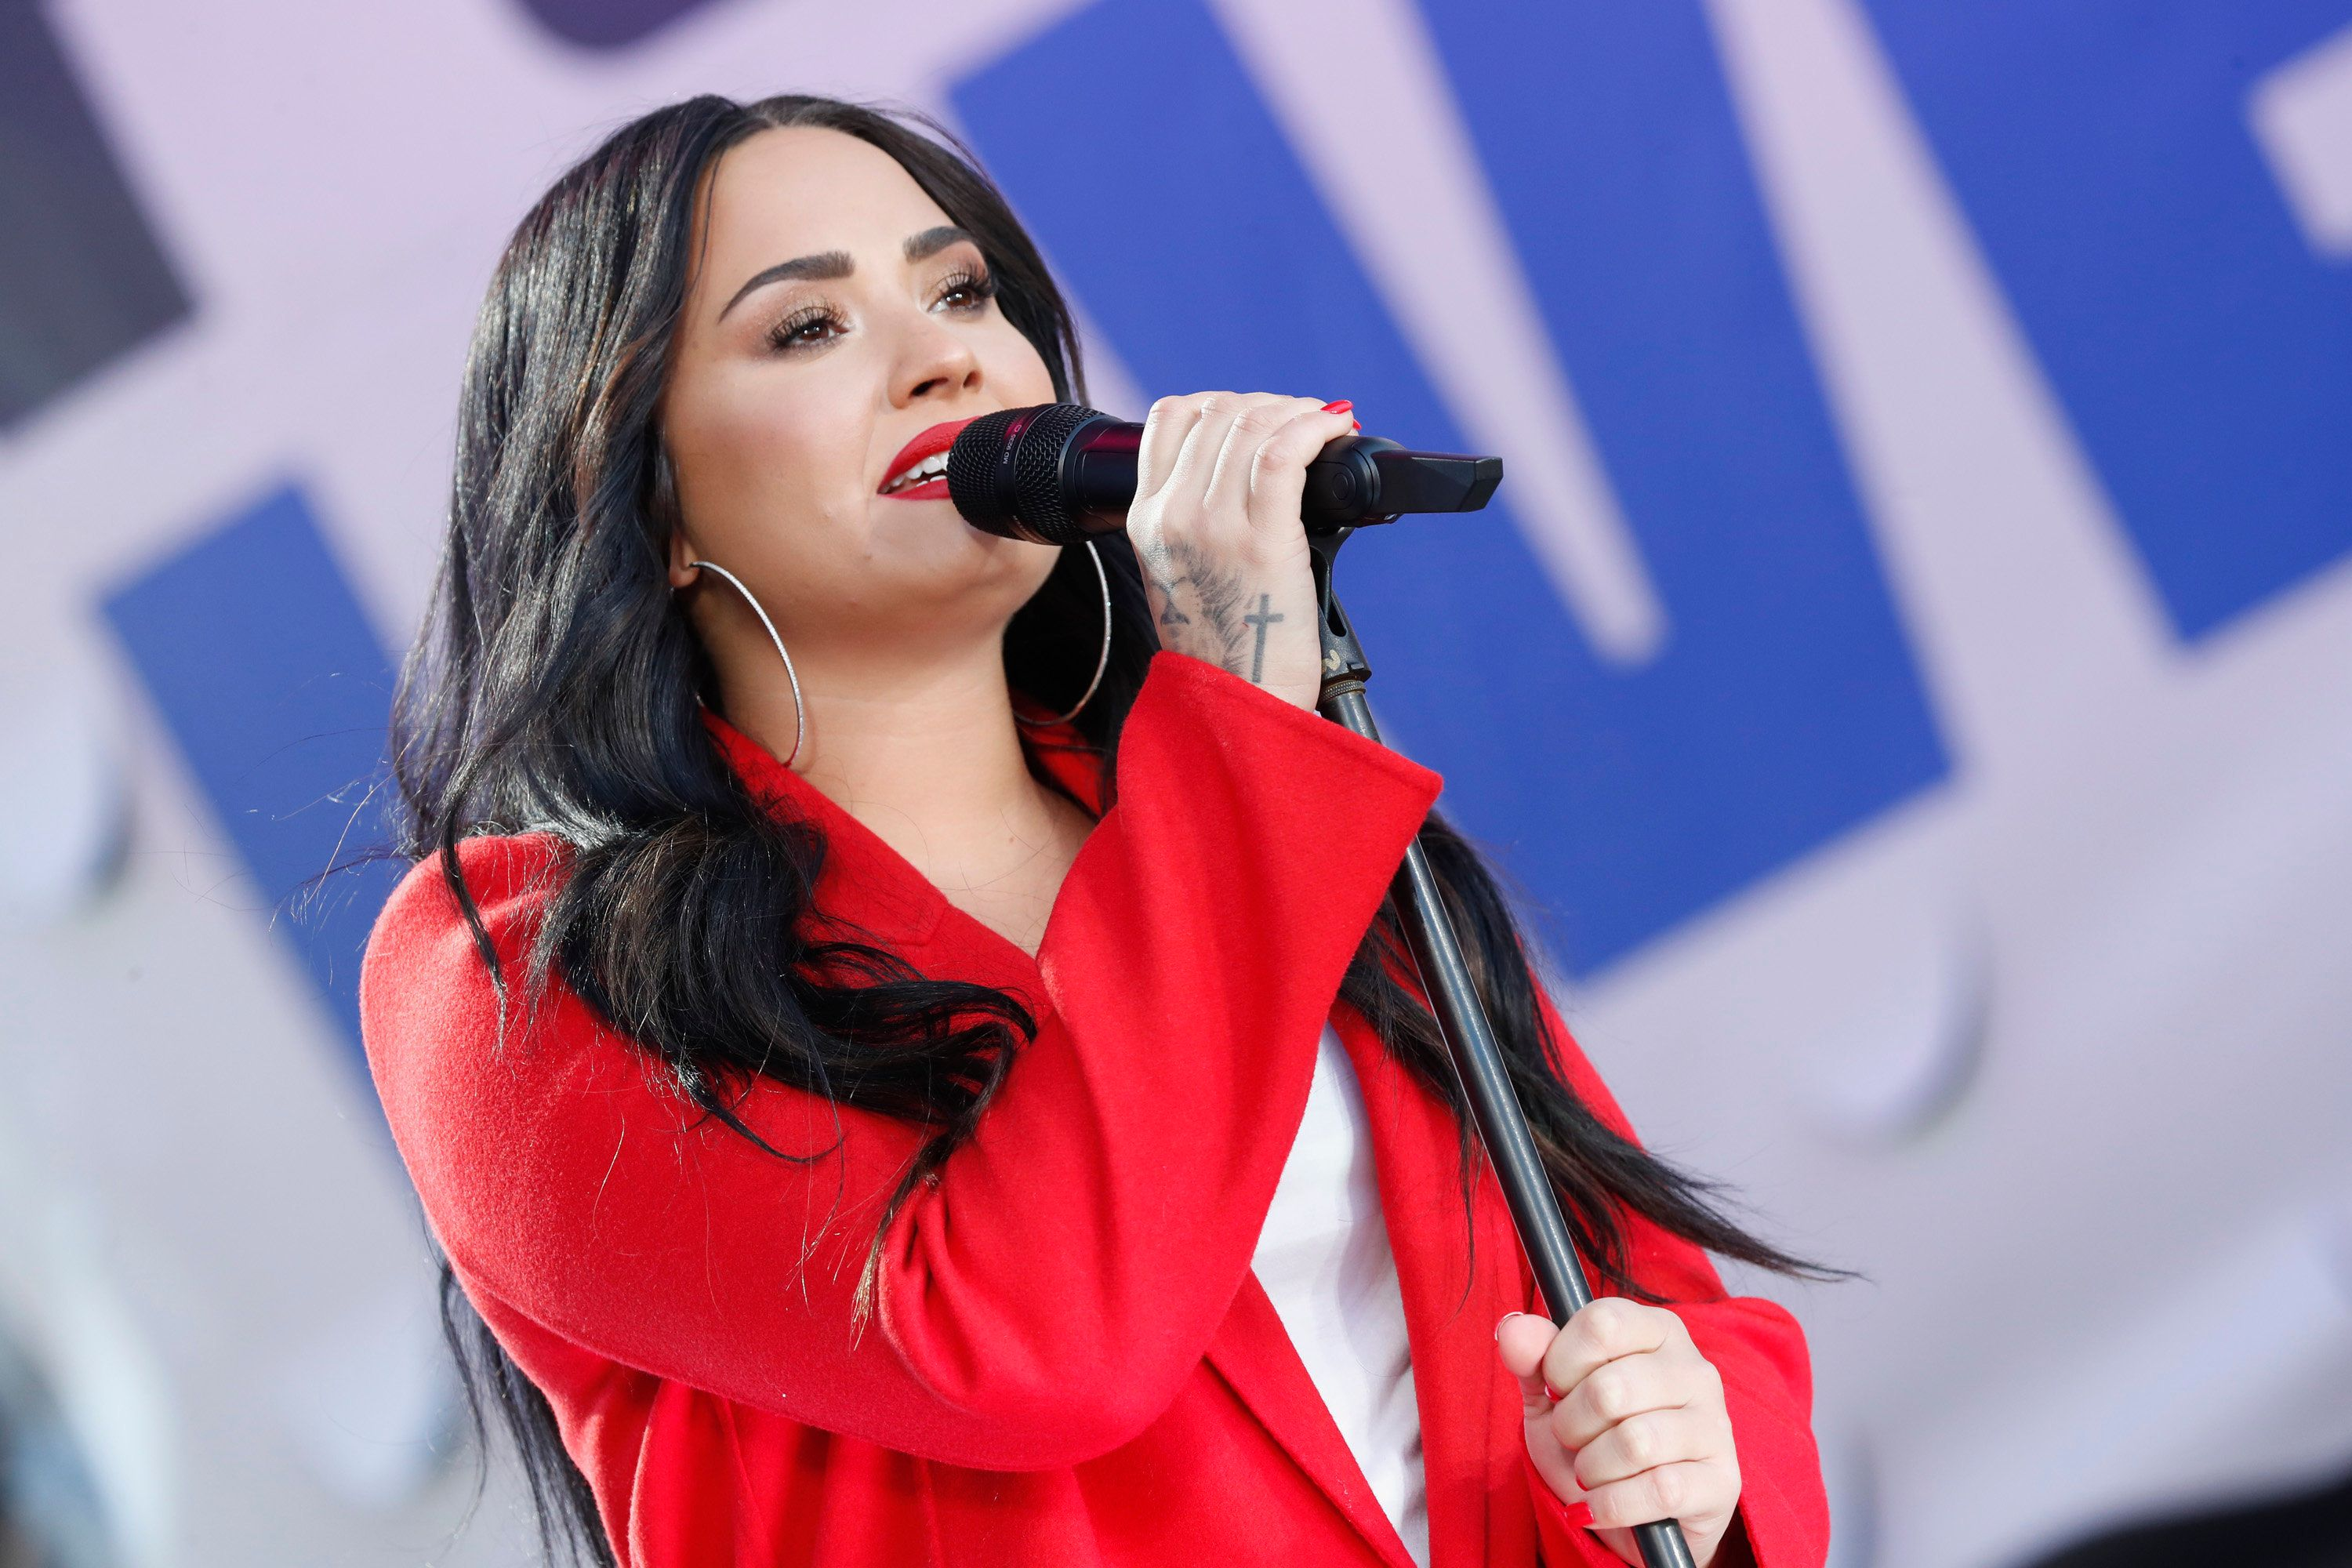 Demi Lovato performs at March for Our Lives on March 24 in Washington, D.C. The artist has long been candid about her ex